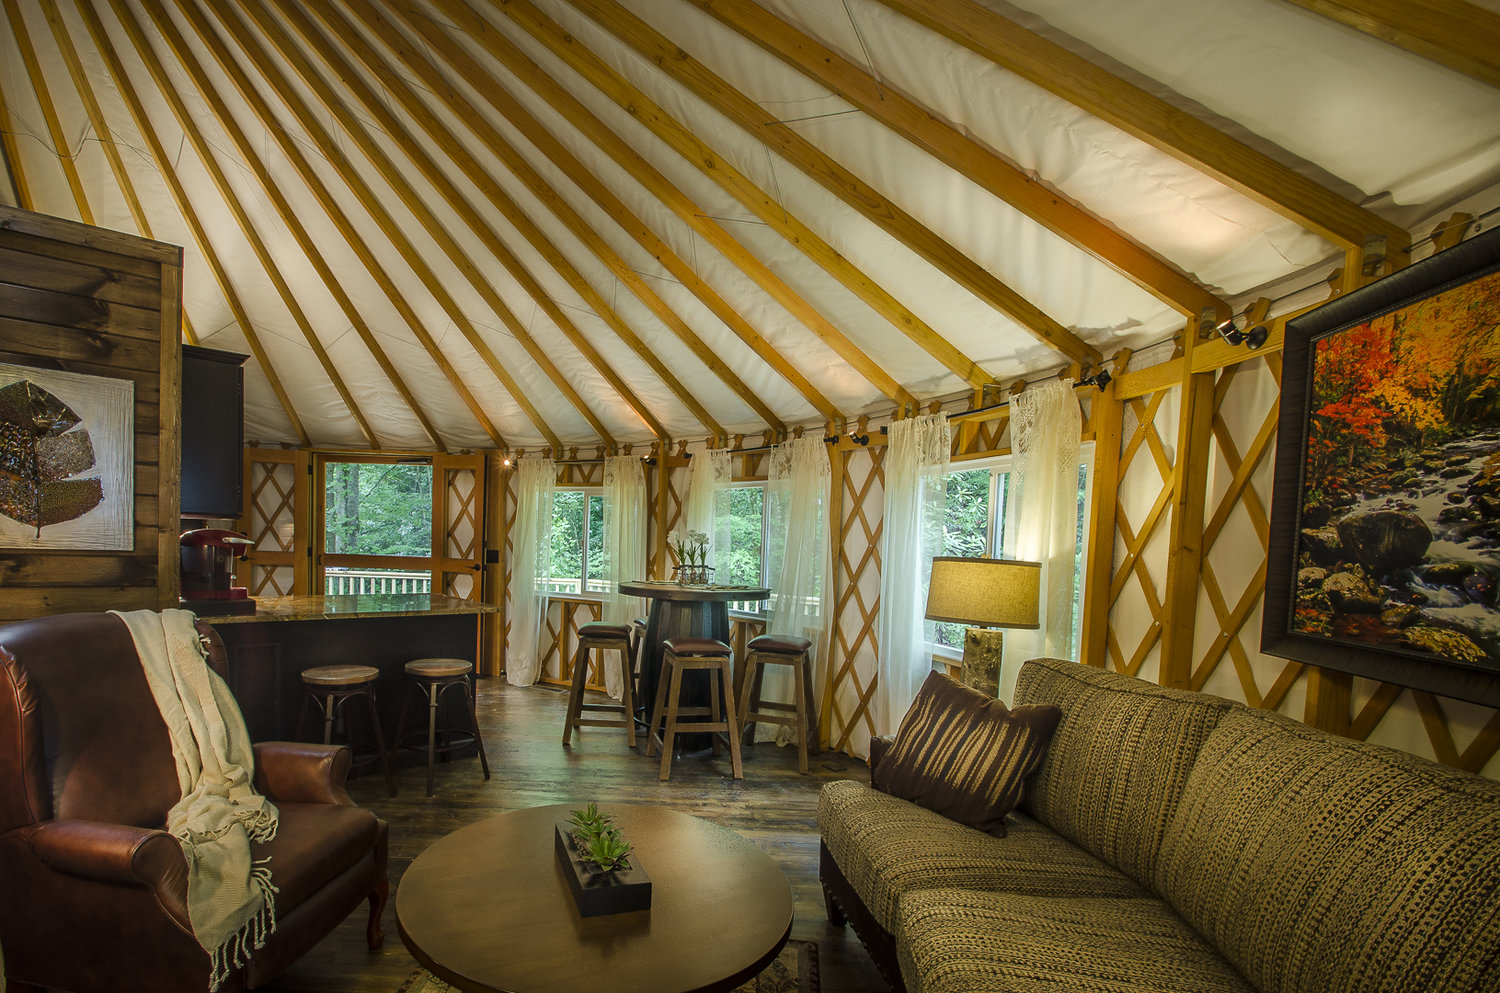 2 Bedroom Luxury Yurt Rental Lake Nantahala Cabin Rental With its circular design and spacious interior, the yurt encourages both social. 2 bedroom luxury yurt rental lake